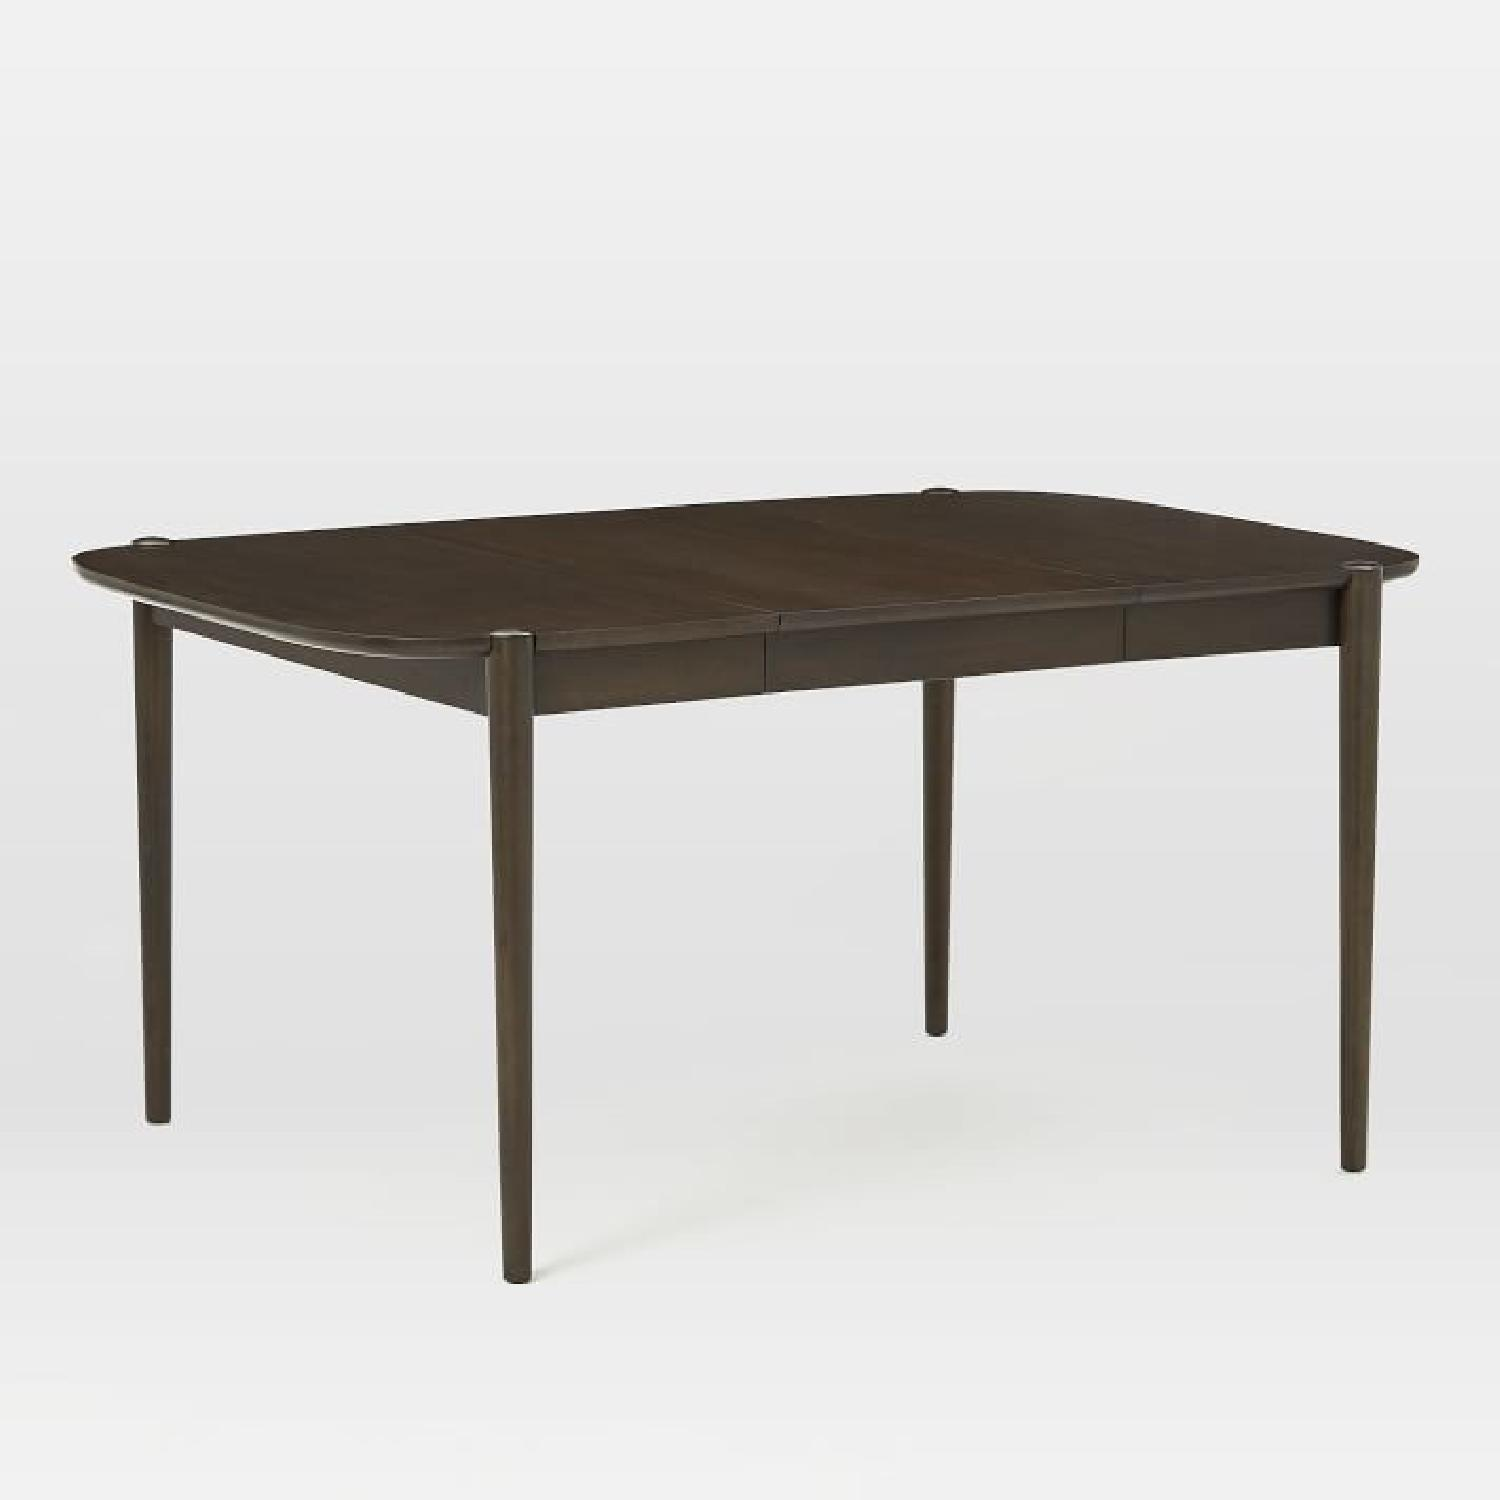 West Elm Ellipse Veneer Dining Table in Dark Mineral